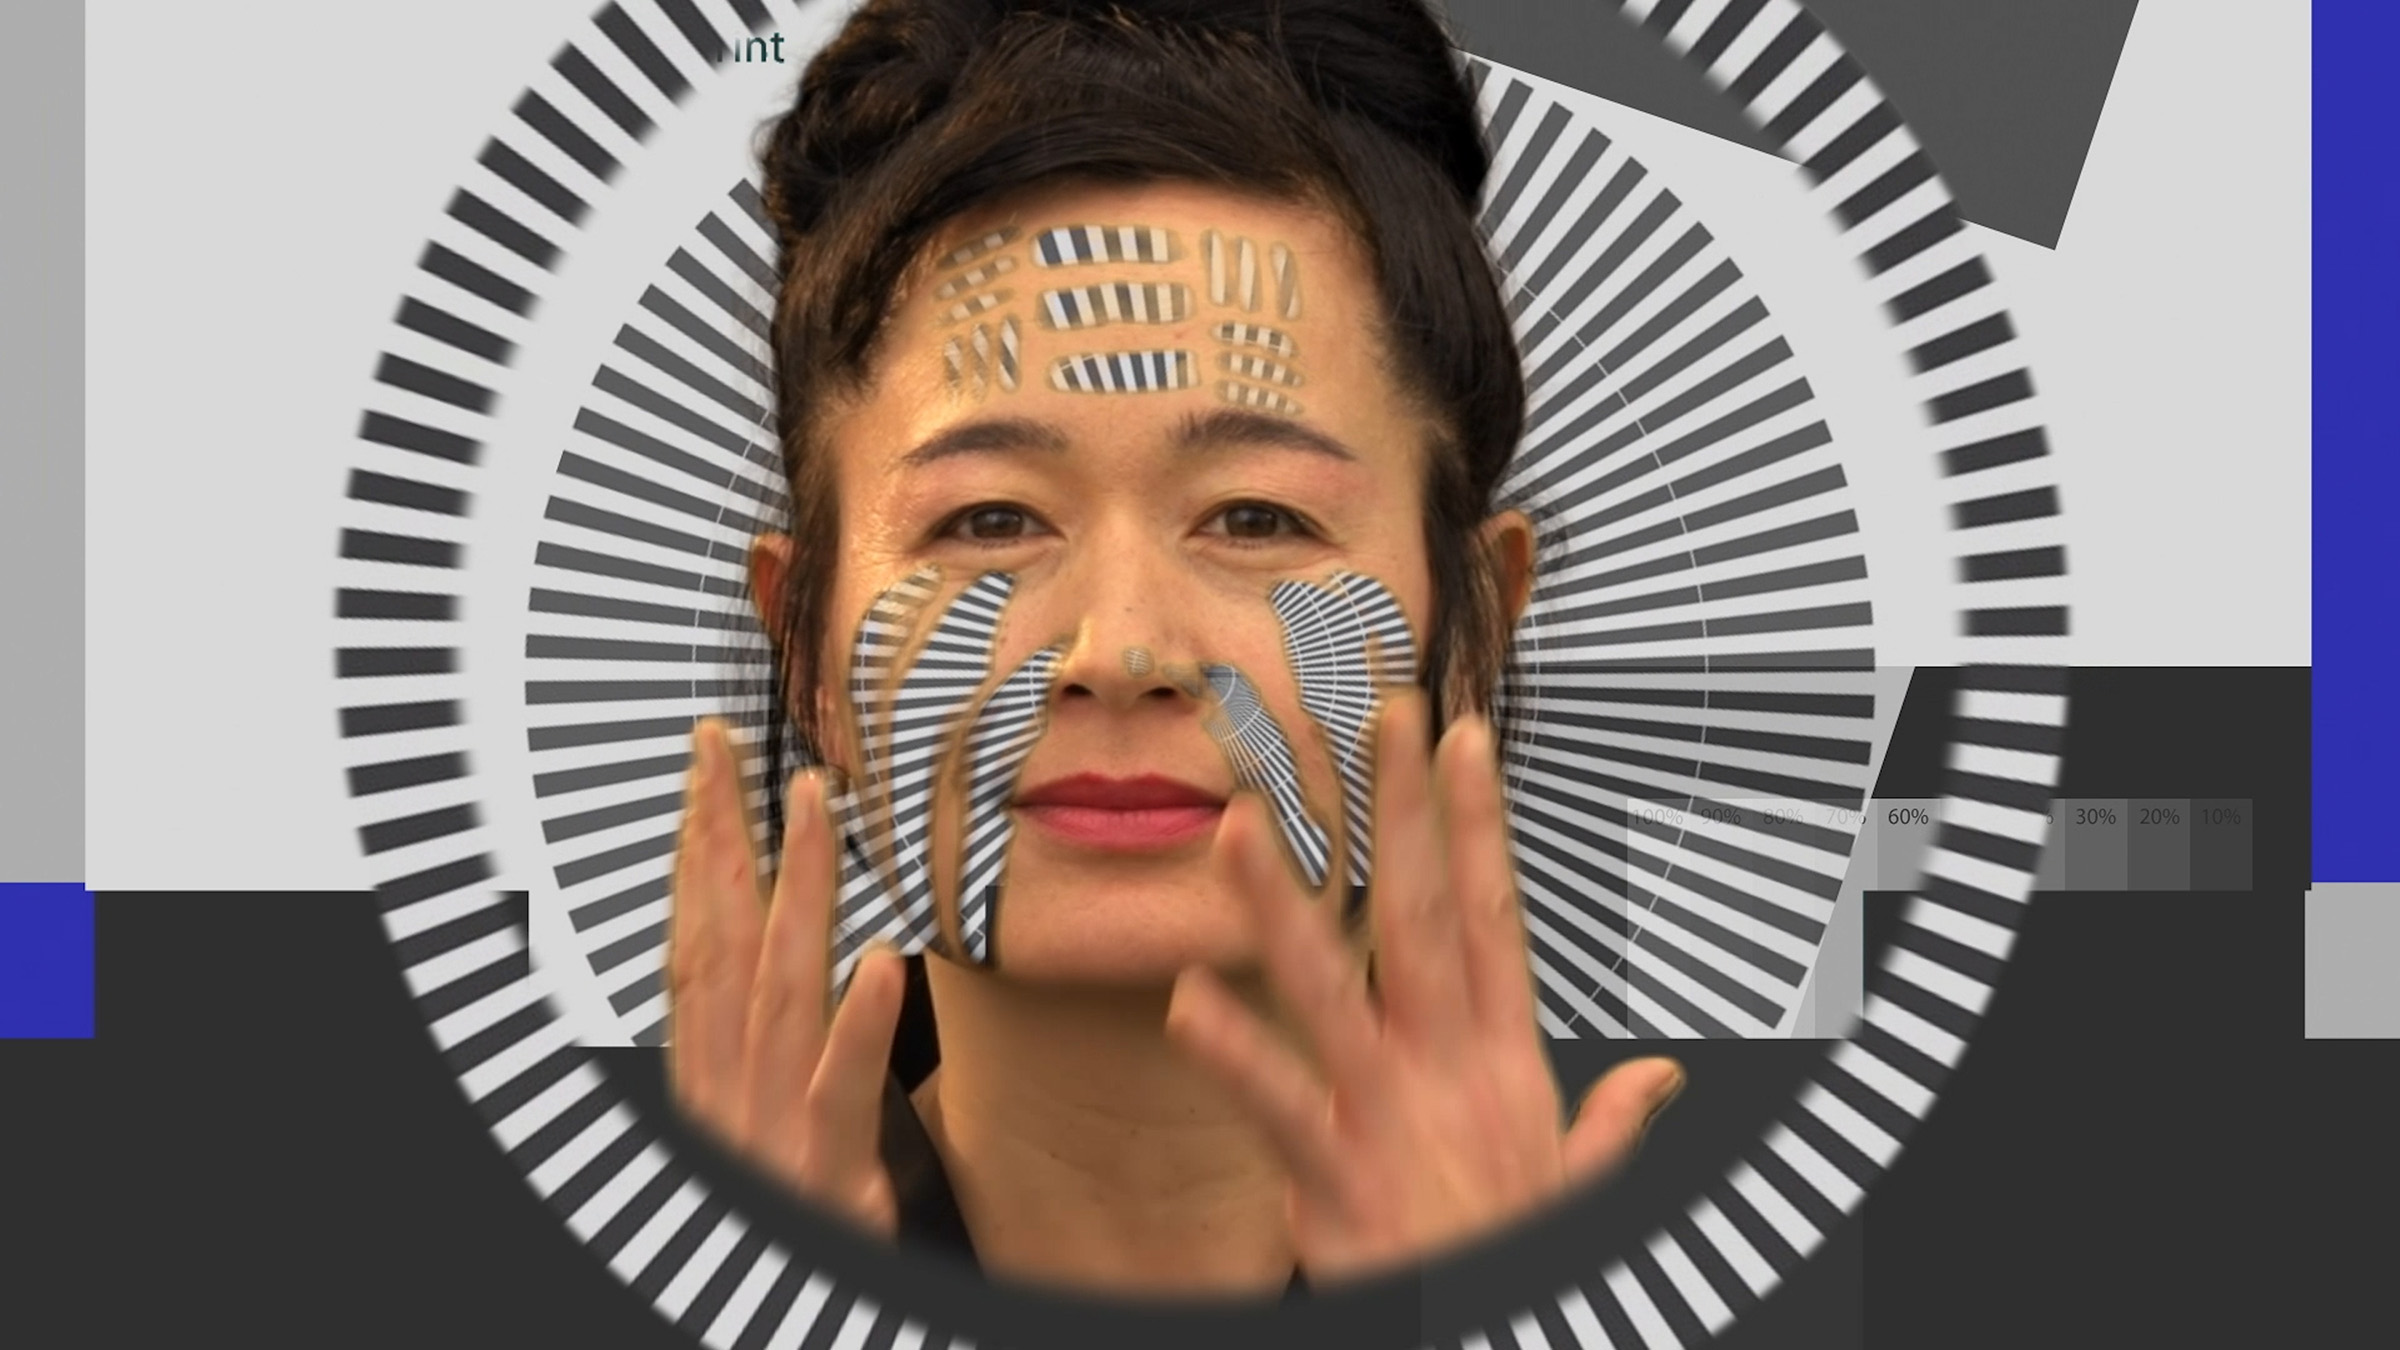 Hito Steyerl, HOW NOT TO BE SEEN: A F**king Didactic Educational .MOV File, 2013. HD video, single screen in architectural environment. Running time: 15 minutes, 52 seconds. Image CC 4.0 Hito Steyerl. Courtesy of Hito Steyerl and Andrew Kreps Gallery, New York. Joseph H. Hirshhorn Purchase Fund, 2016